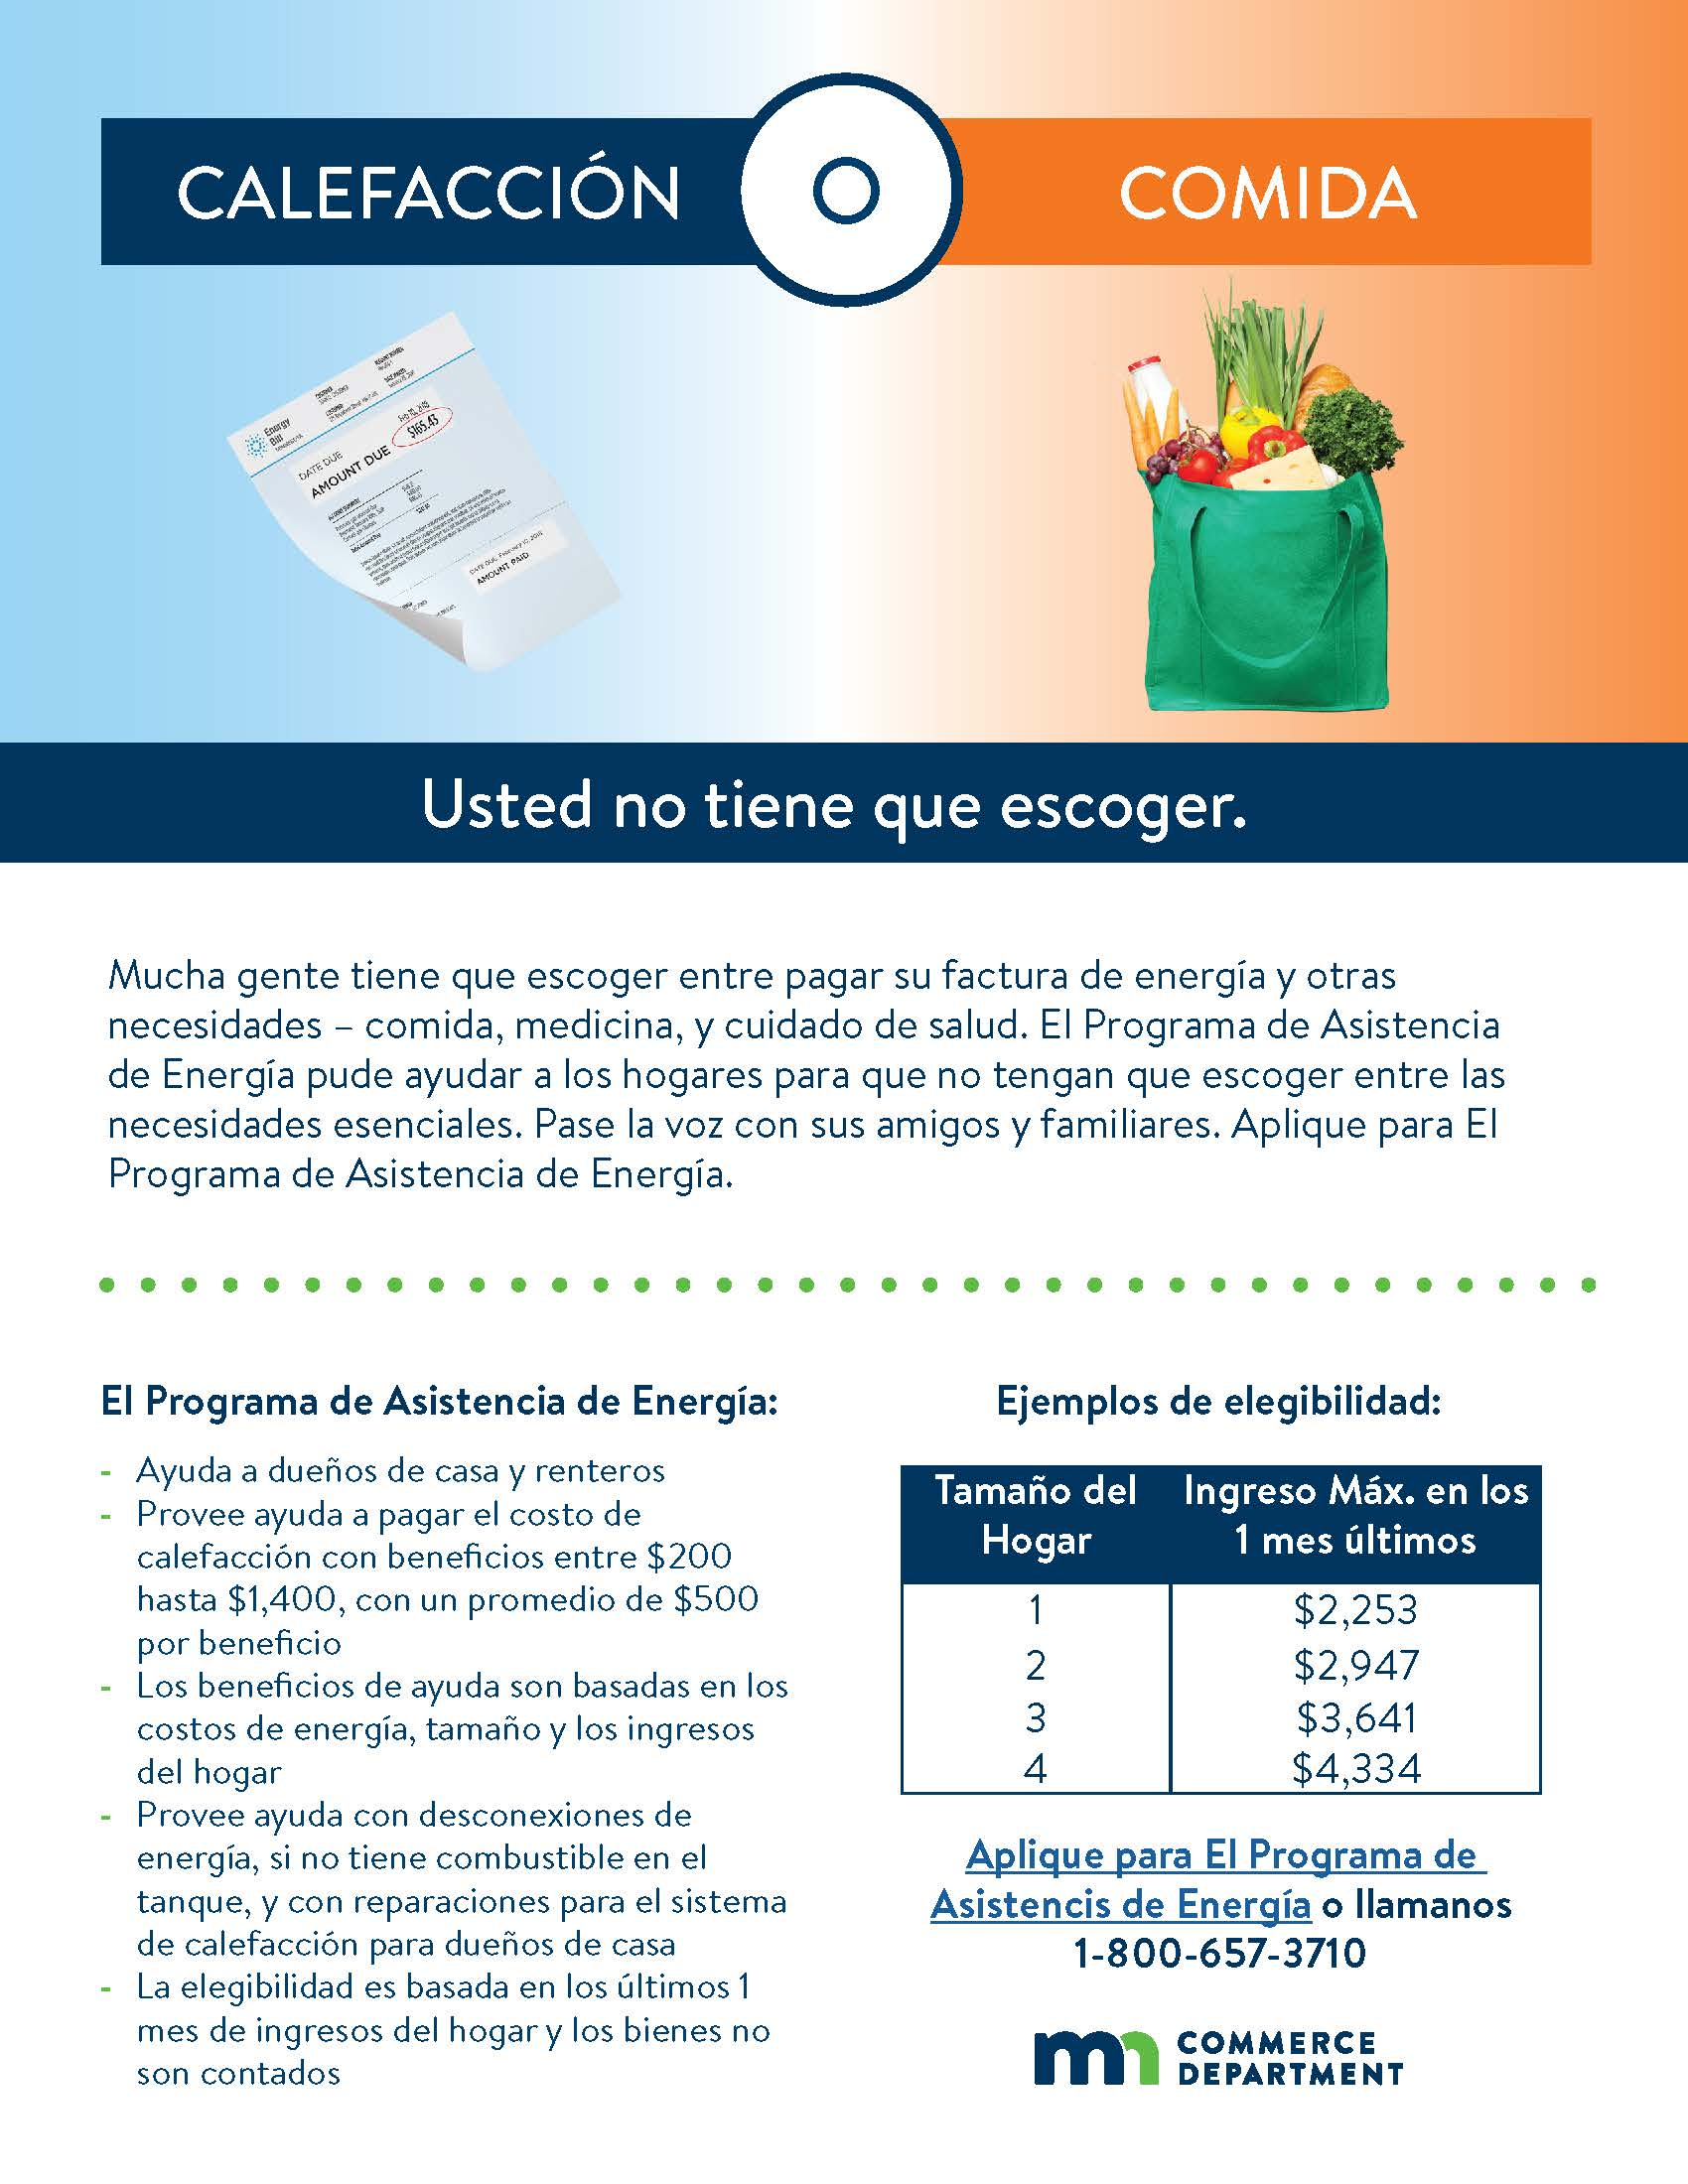 COVID eap-flyer-spanish_April 2020